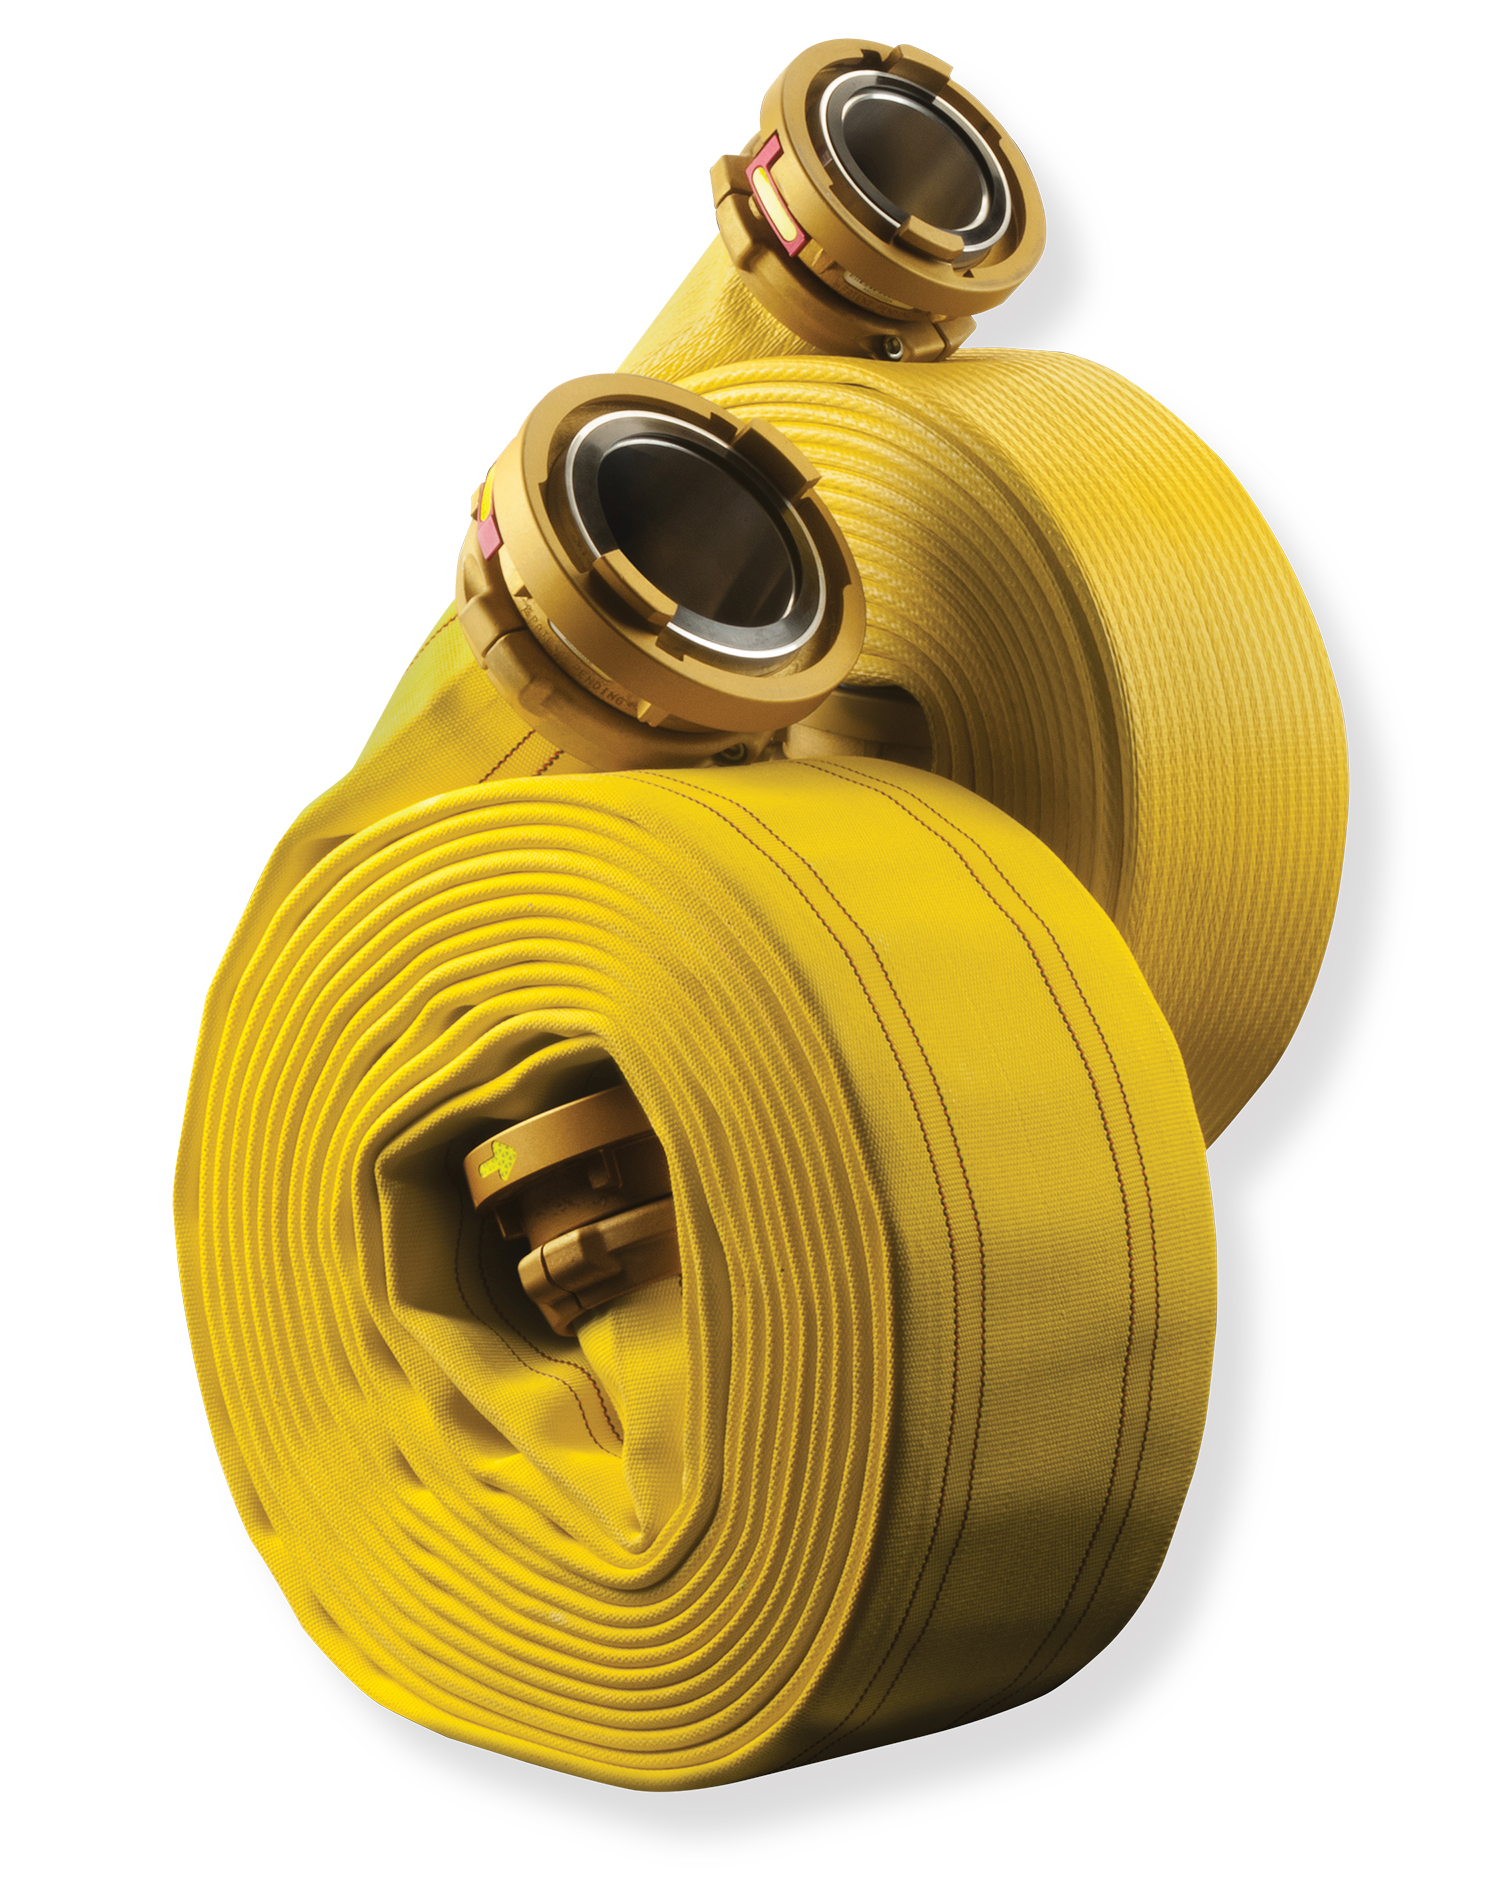 American Fire Hose And Cabinet Fire Hose And Pump Manufacturer Mercedes Textiles